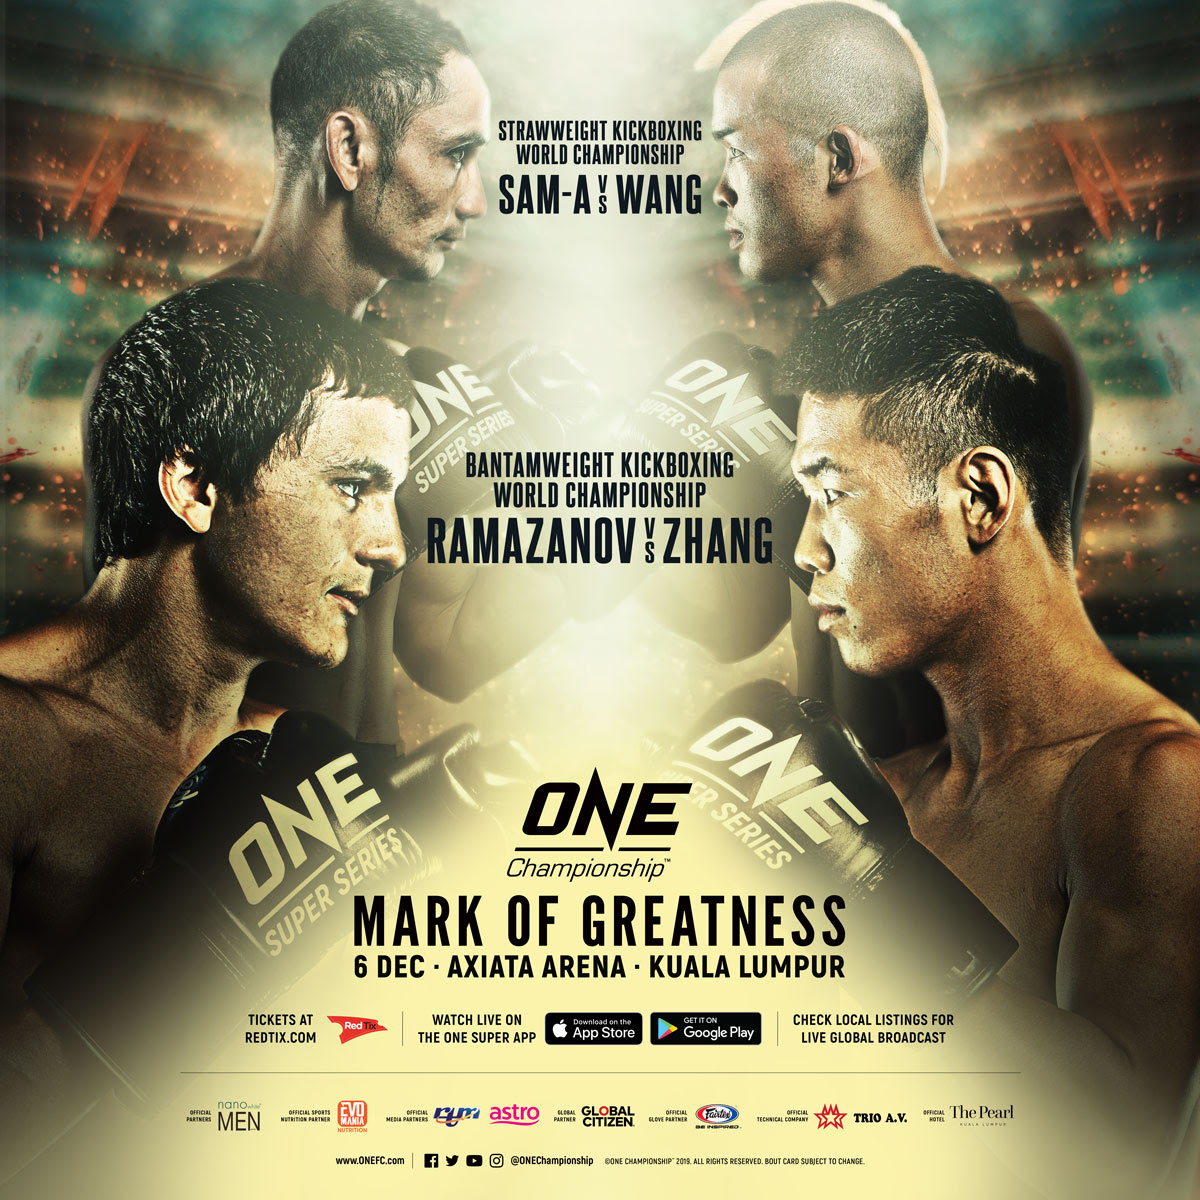 ALAVERDI RAMAZANOV TAKES ON ZHANG CHENGLONG FOR INAUGURAL ONE BANTAMWEIGHT KICKBOXING WORLD CHAMPIONSHIP - ONE